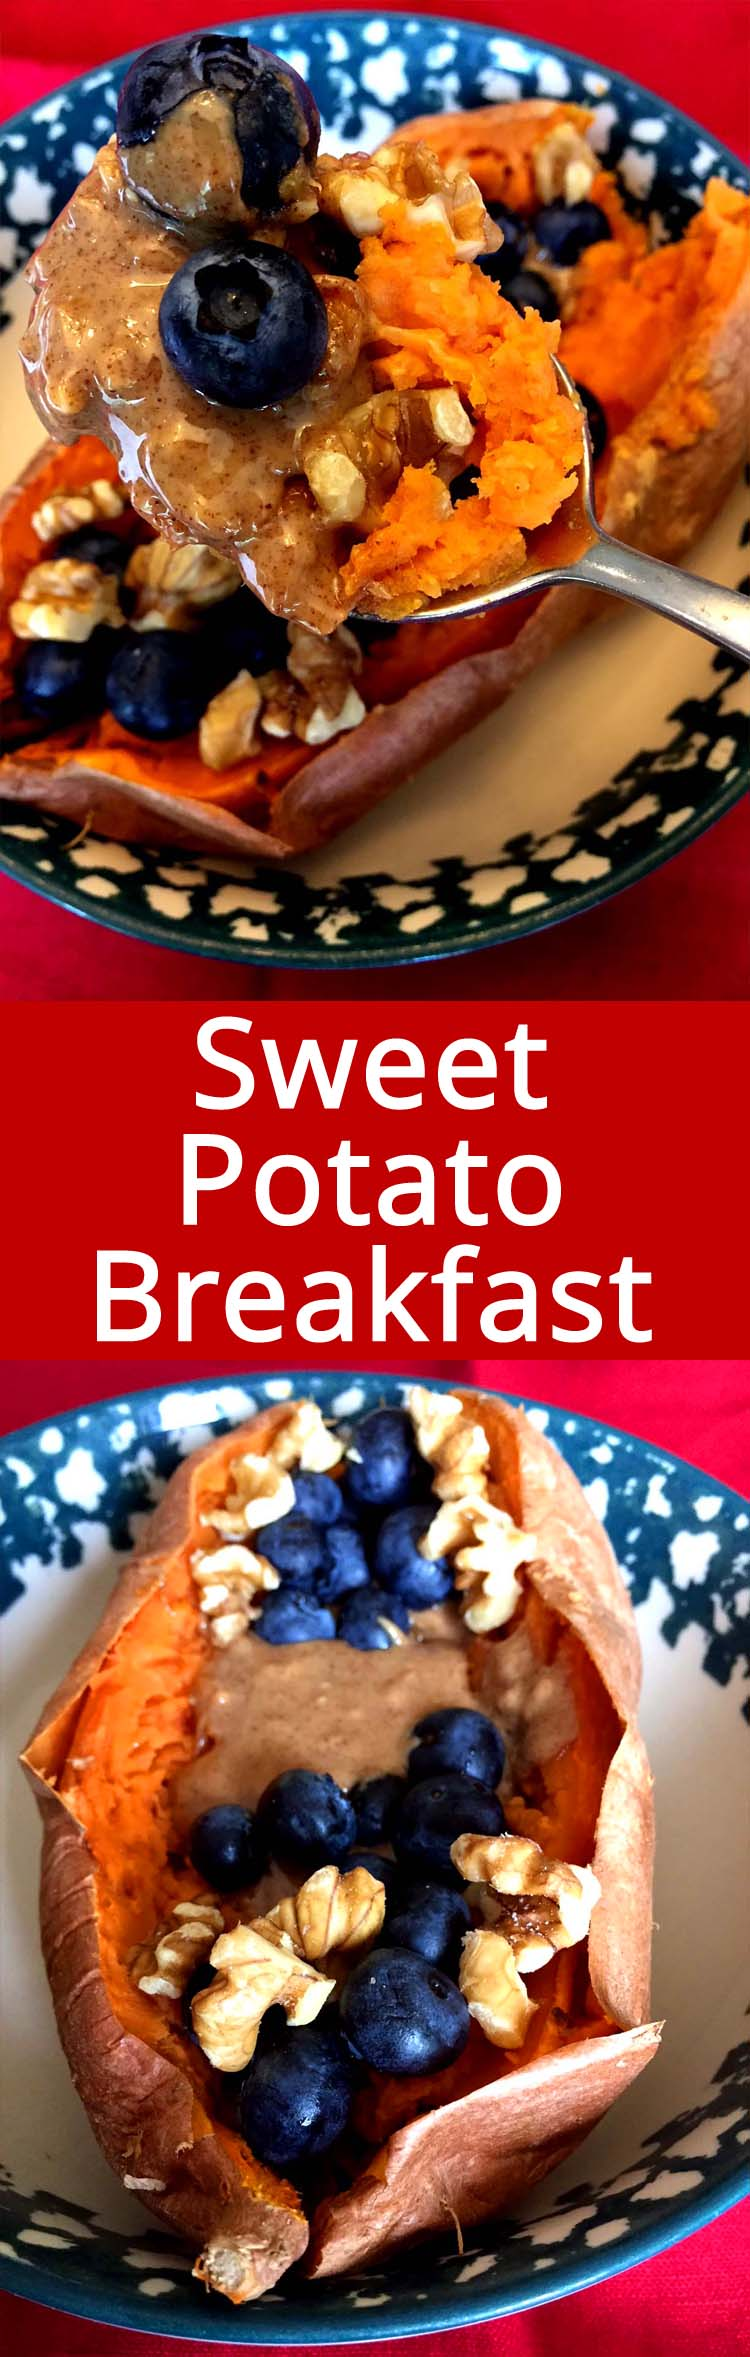 This sweet potato breakfast bowl is amazing! So healthy and delicious! All natural, unprocessed and gluten-free! What a perfect healthy paleo breakfast!